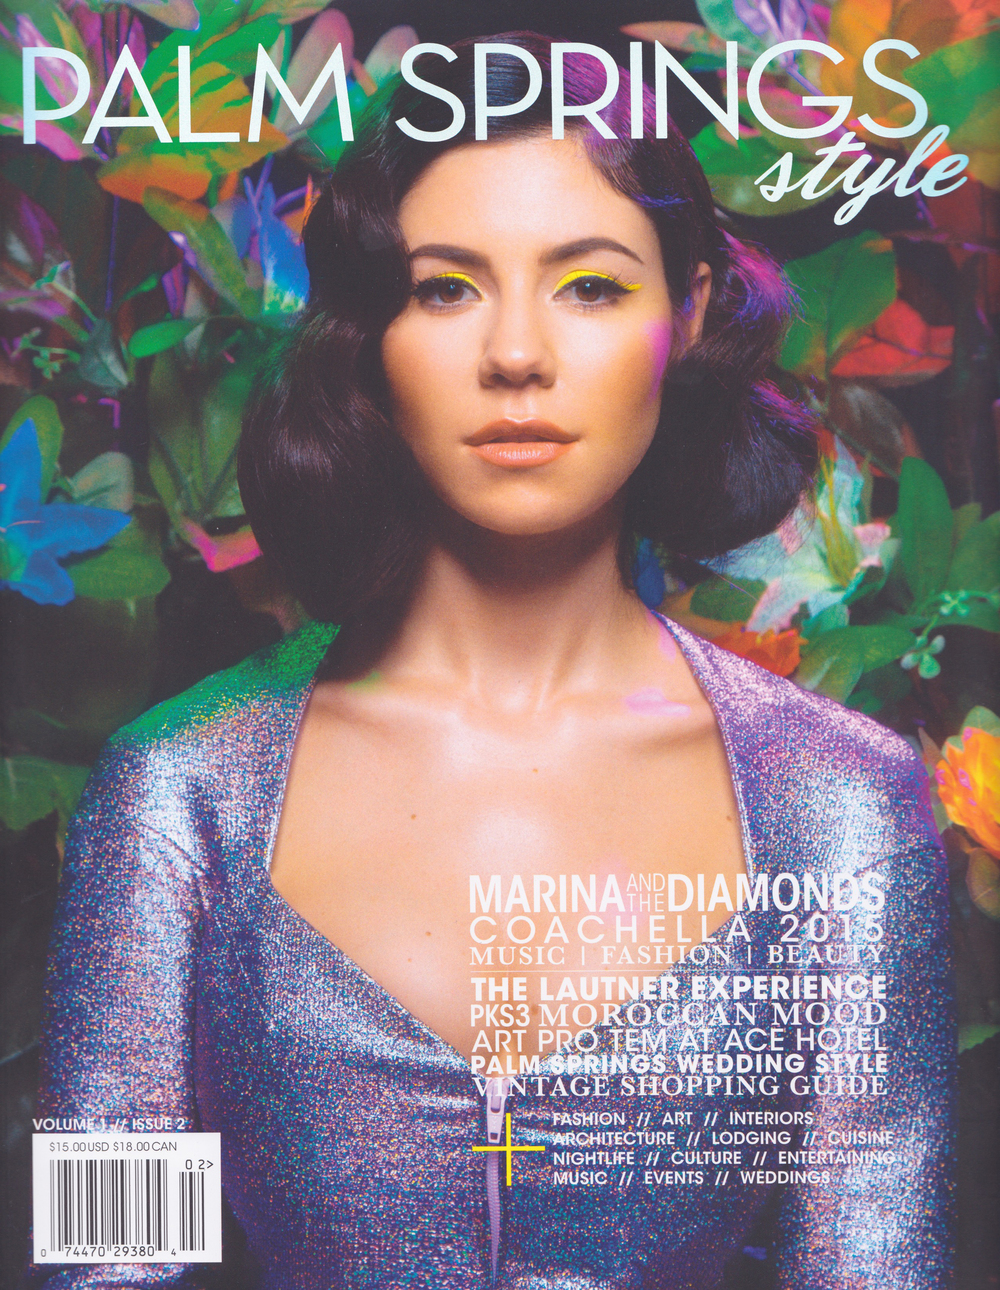 Palm Springs Style Volume 1 Issue 2 April 2015